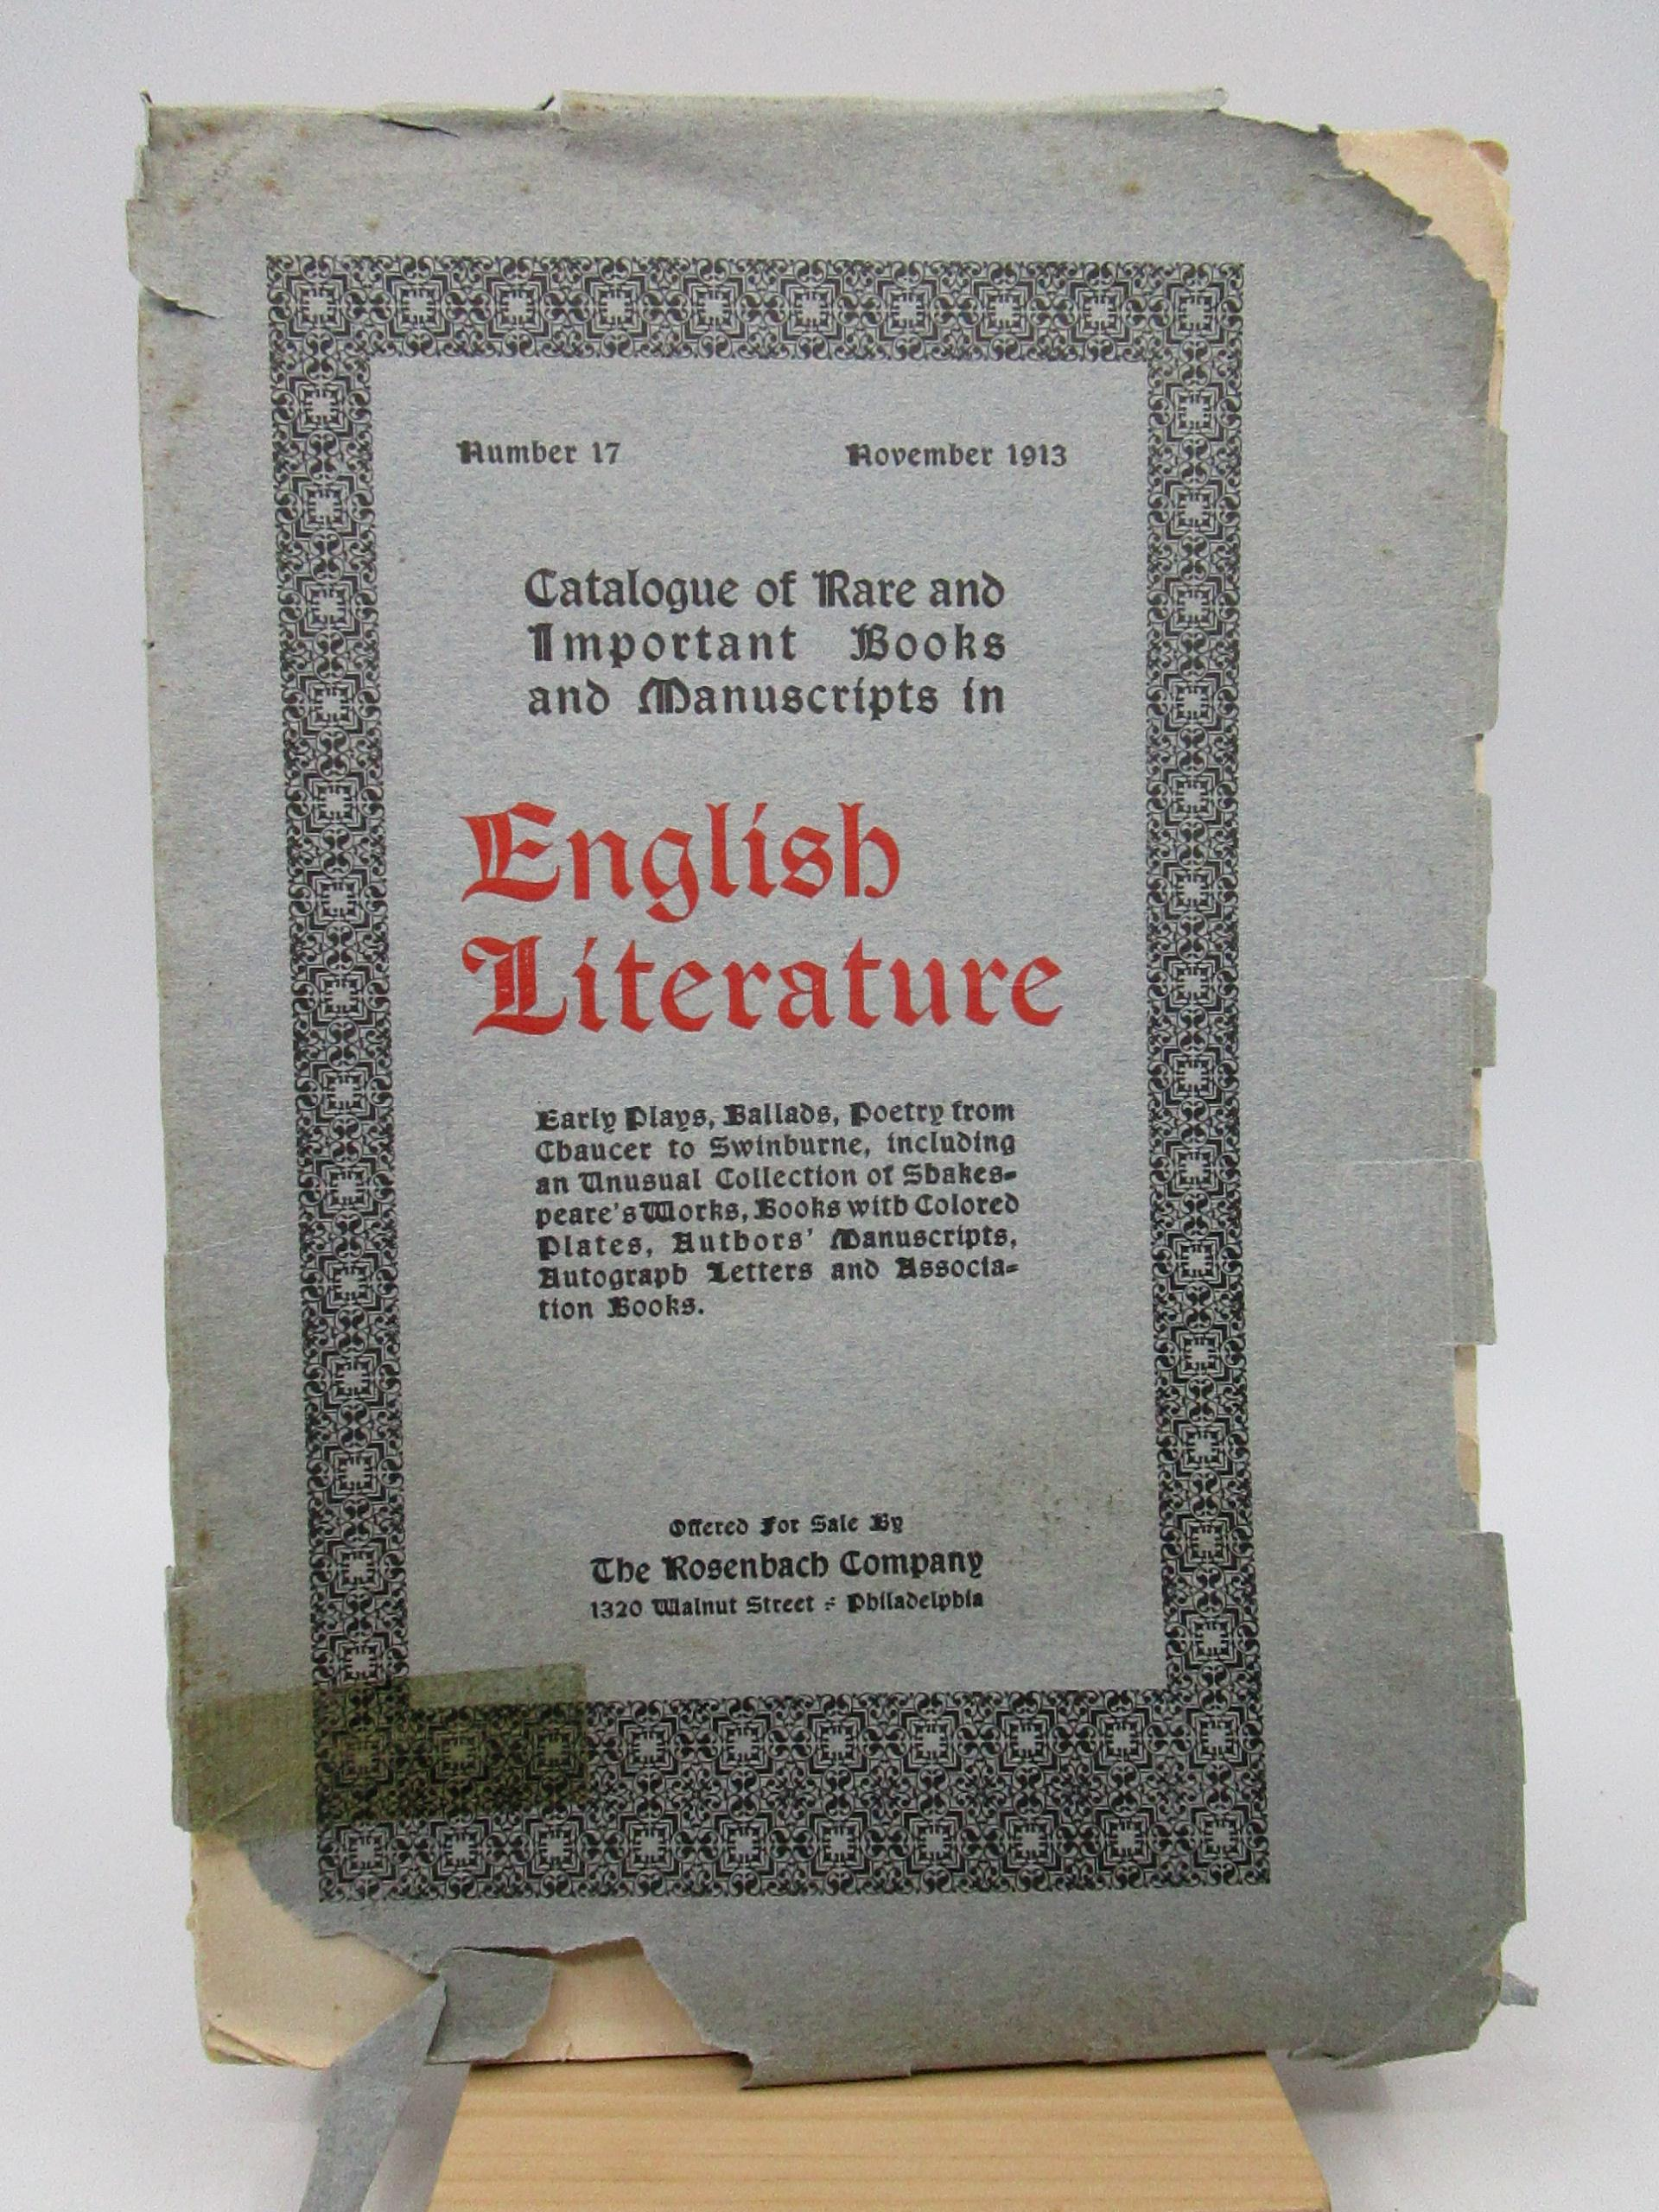 Image for Catalogue of English Literature - Comprising Early Plays, Ballads, Poetry from Chaucer to Swinburne, Books with Colored Plates, First Editions, Association Books, Authors' Manuscripts, Autograph Letters (Number 17)